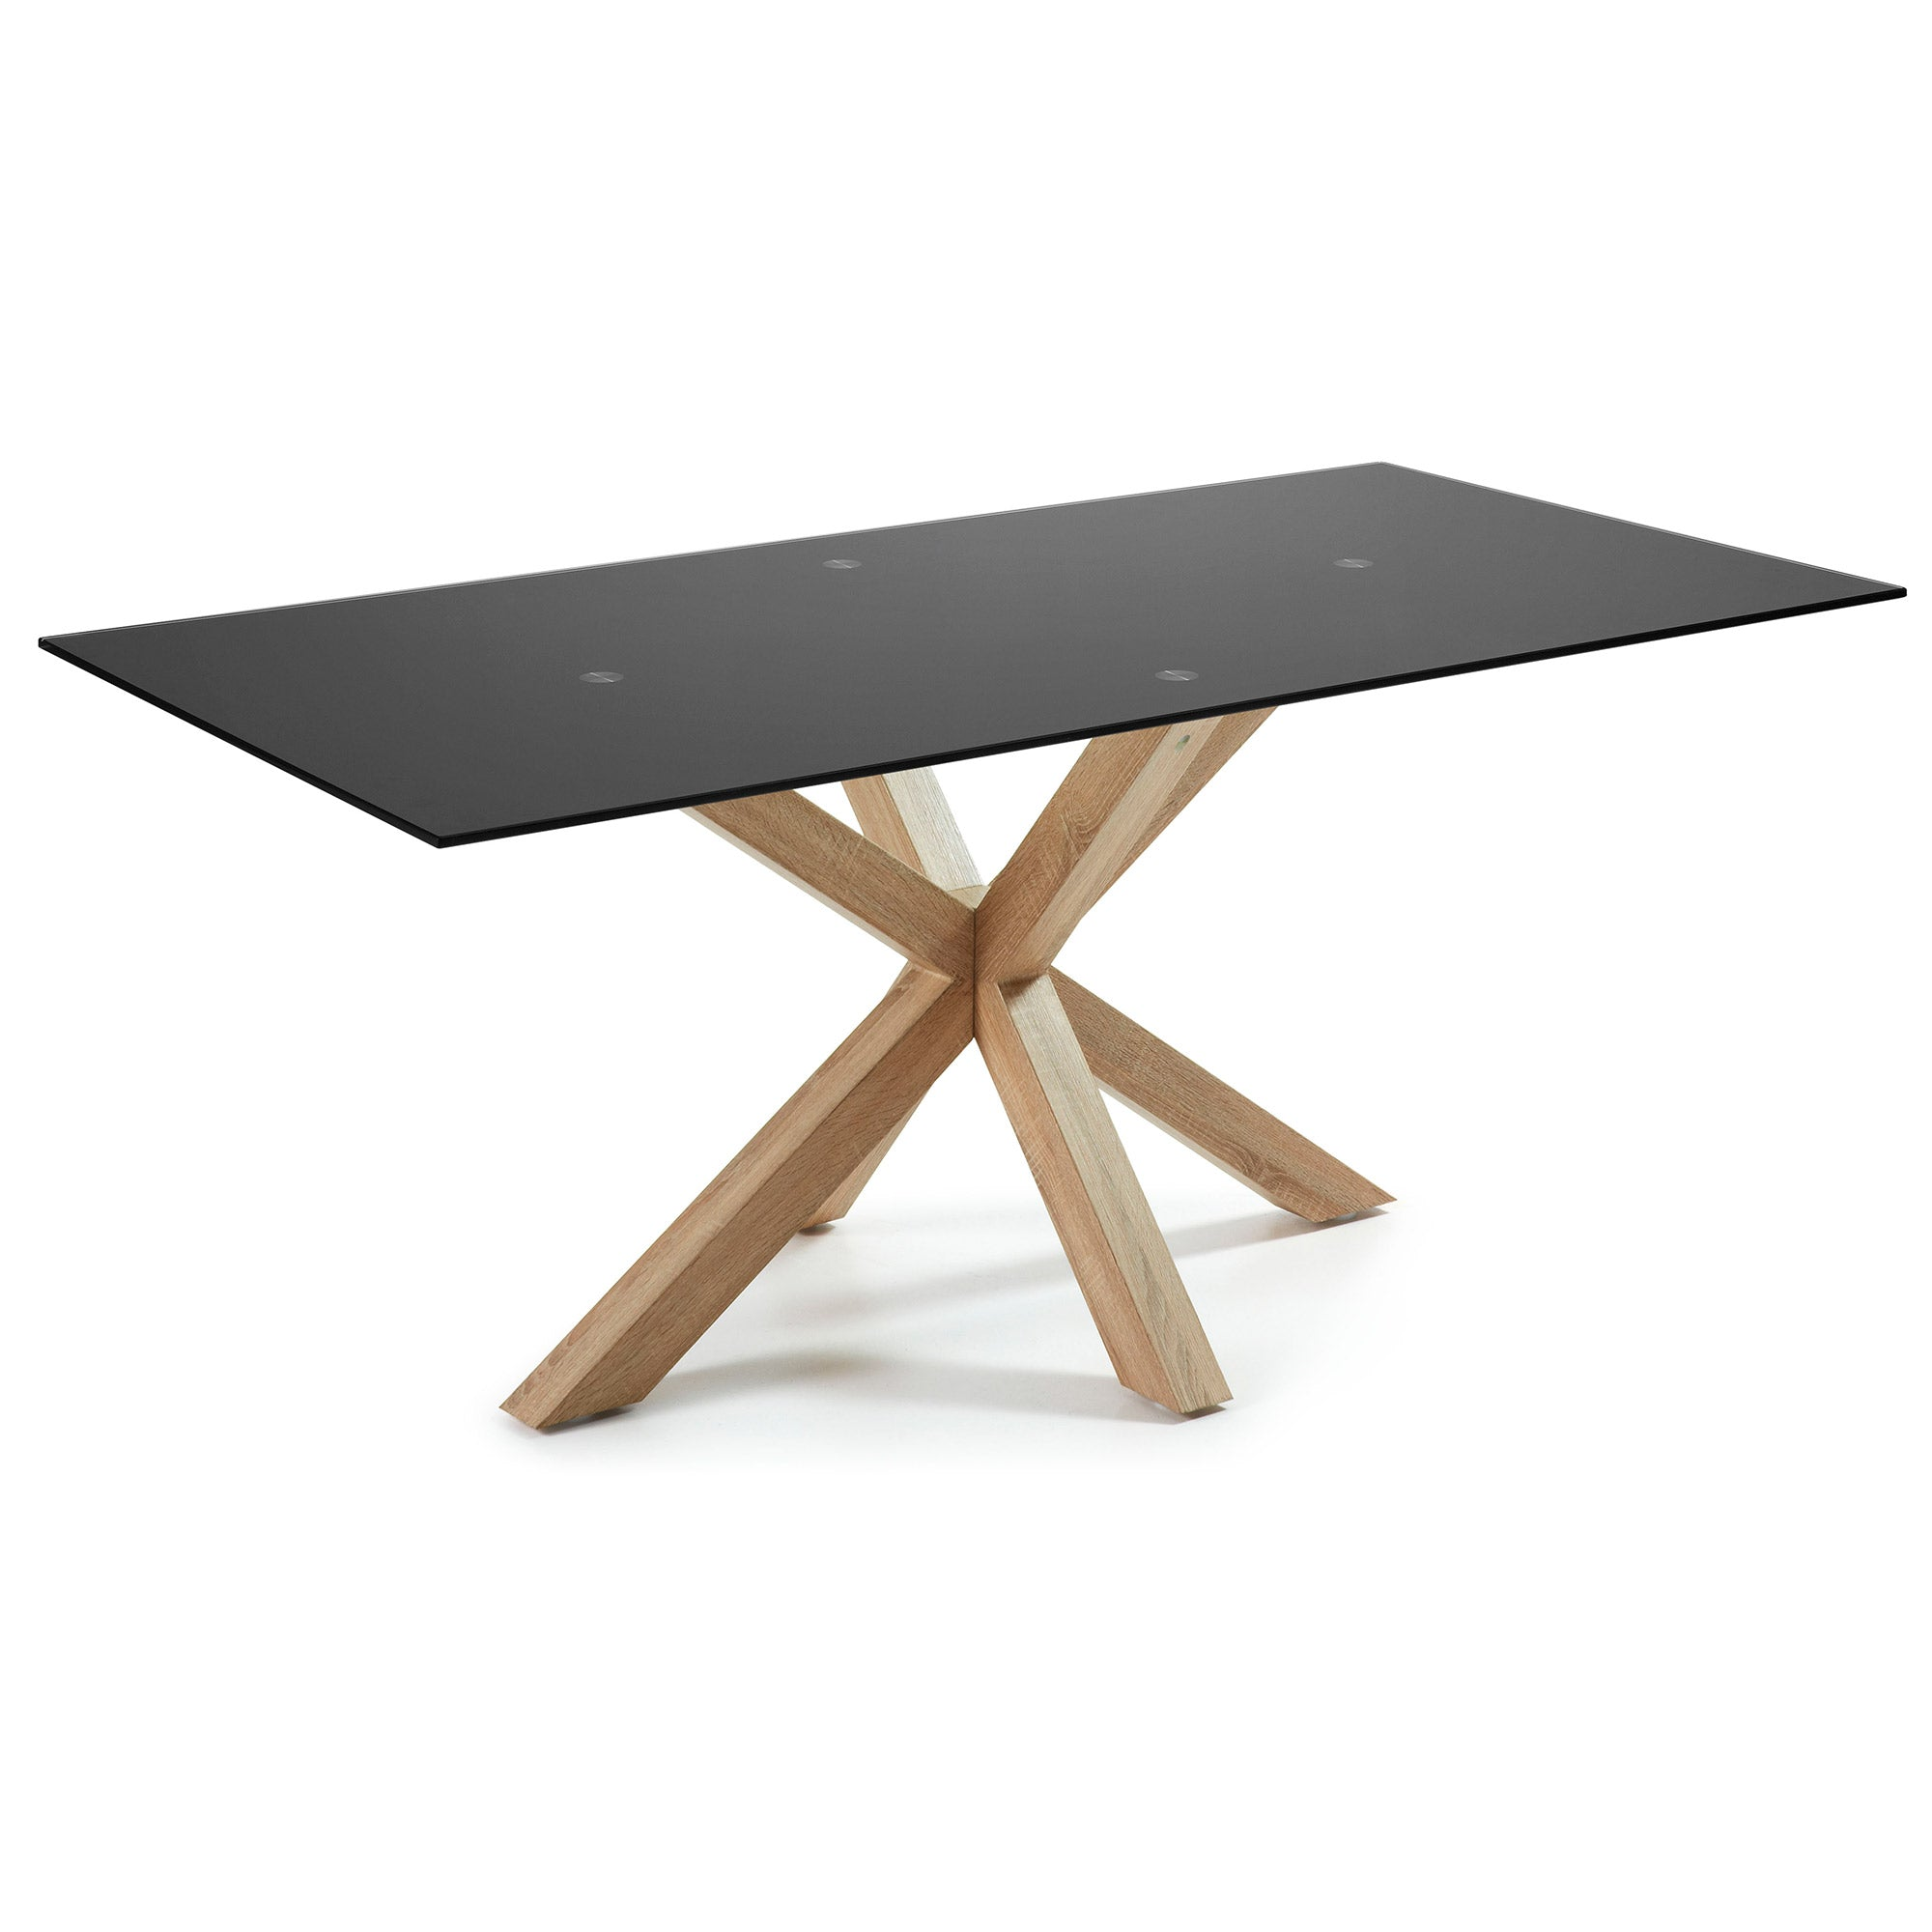 Mermi Dining Table 2m - C429C01, Table - Home-Buy Interiors